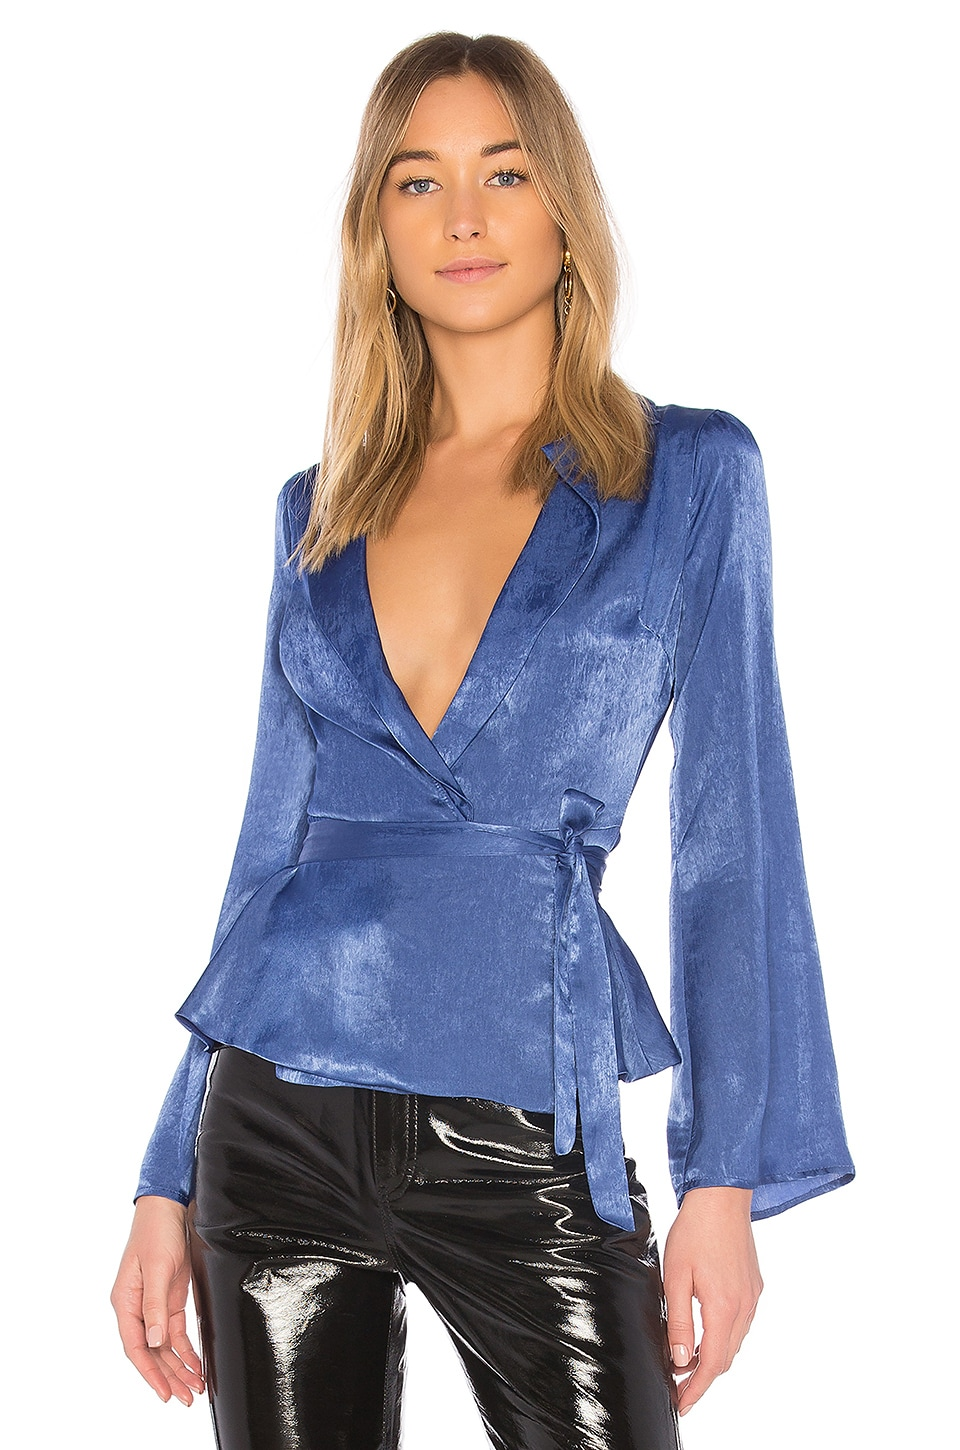 L'Academie BLUSA RUSSELL